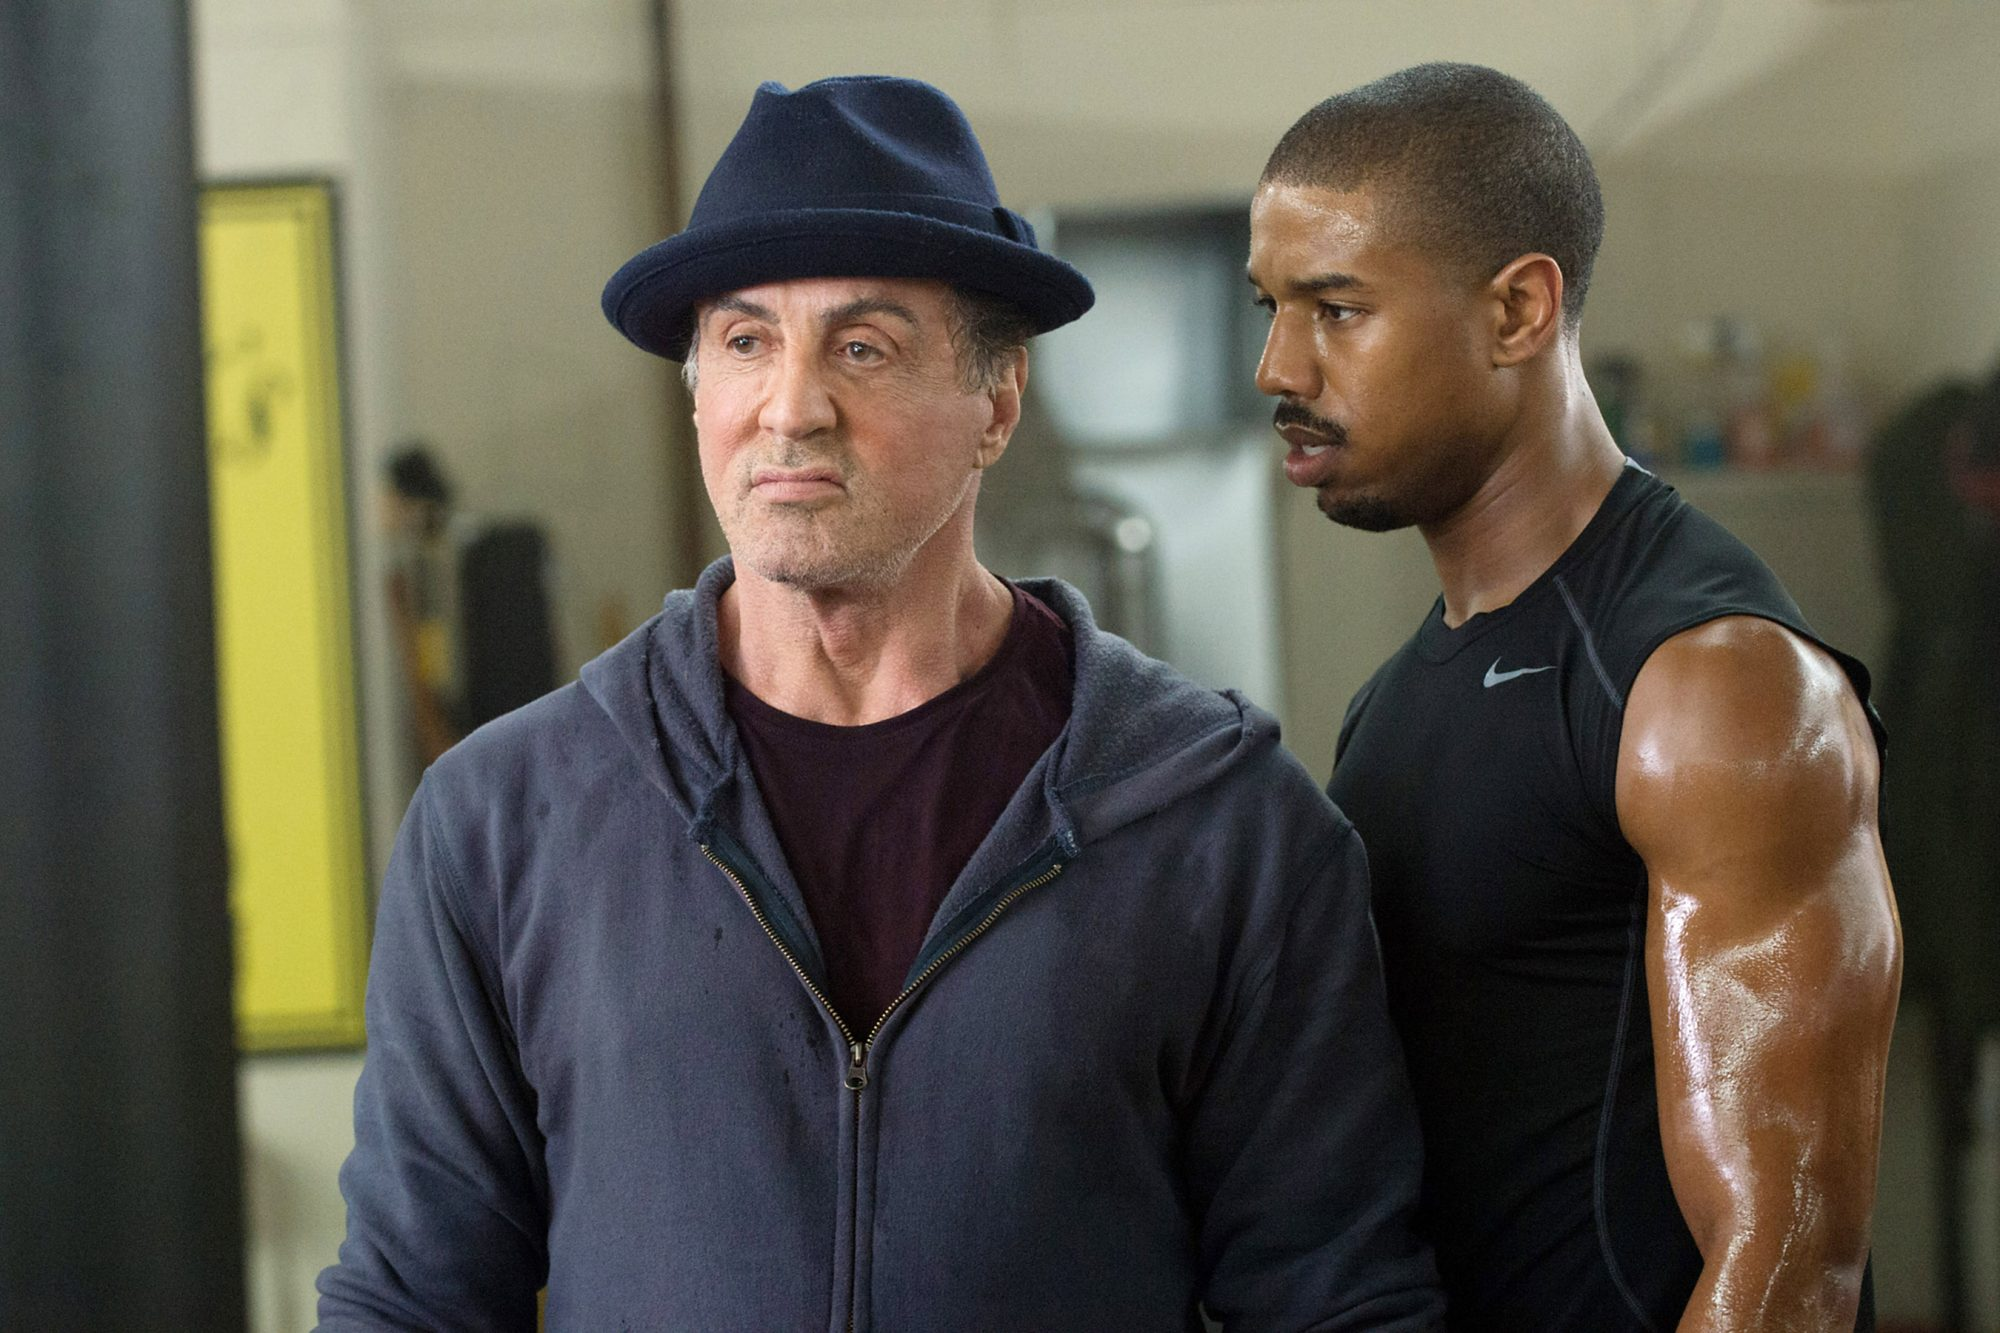 CREED, from left: Sylvester Stallone, Michael B. Jordan, 2015. ph: Barry Wetcher/©Warner